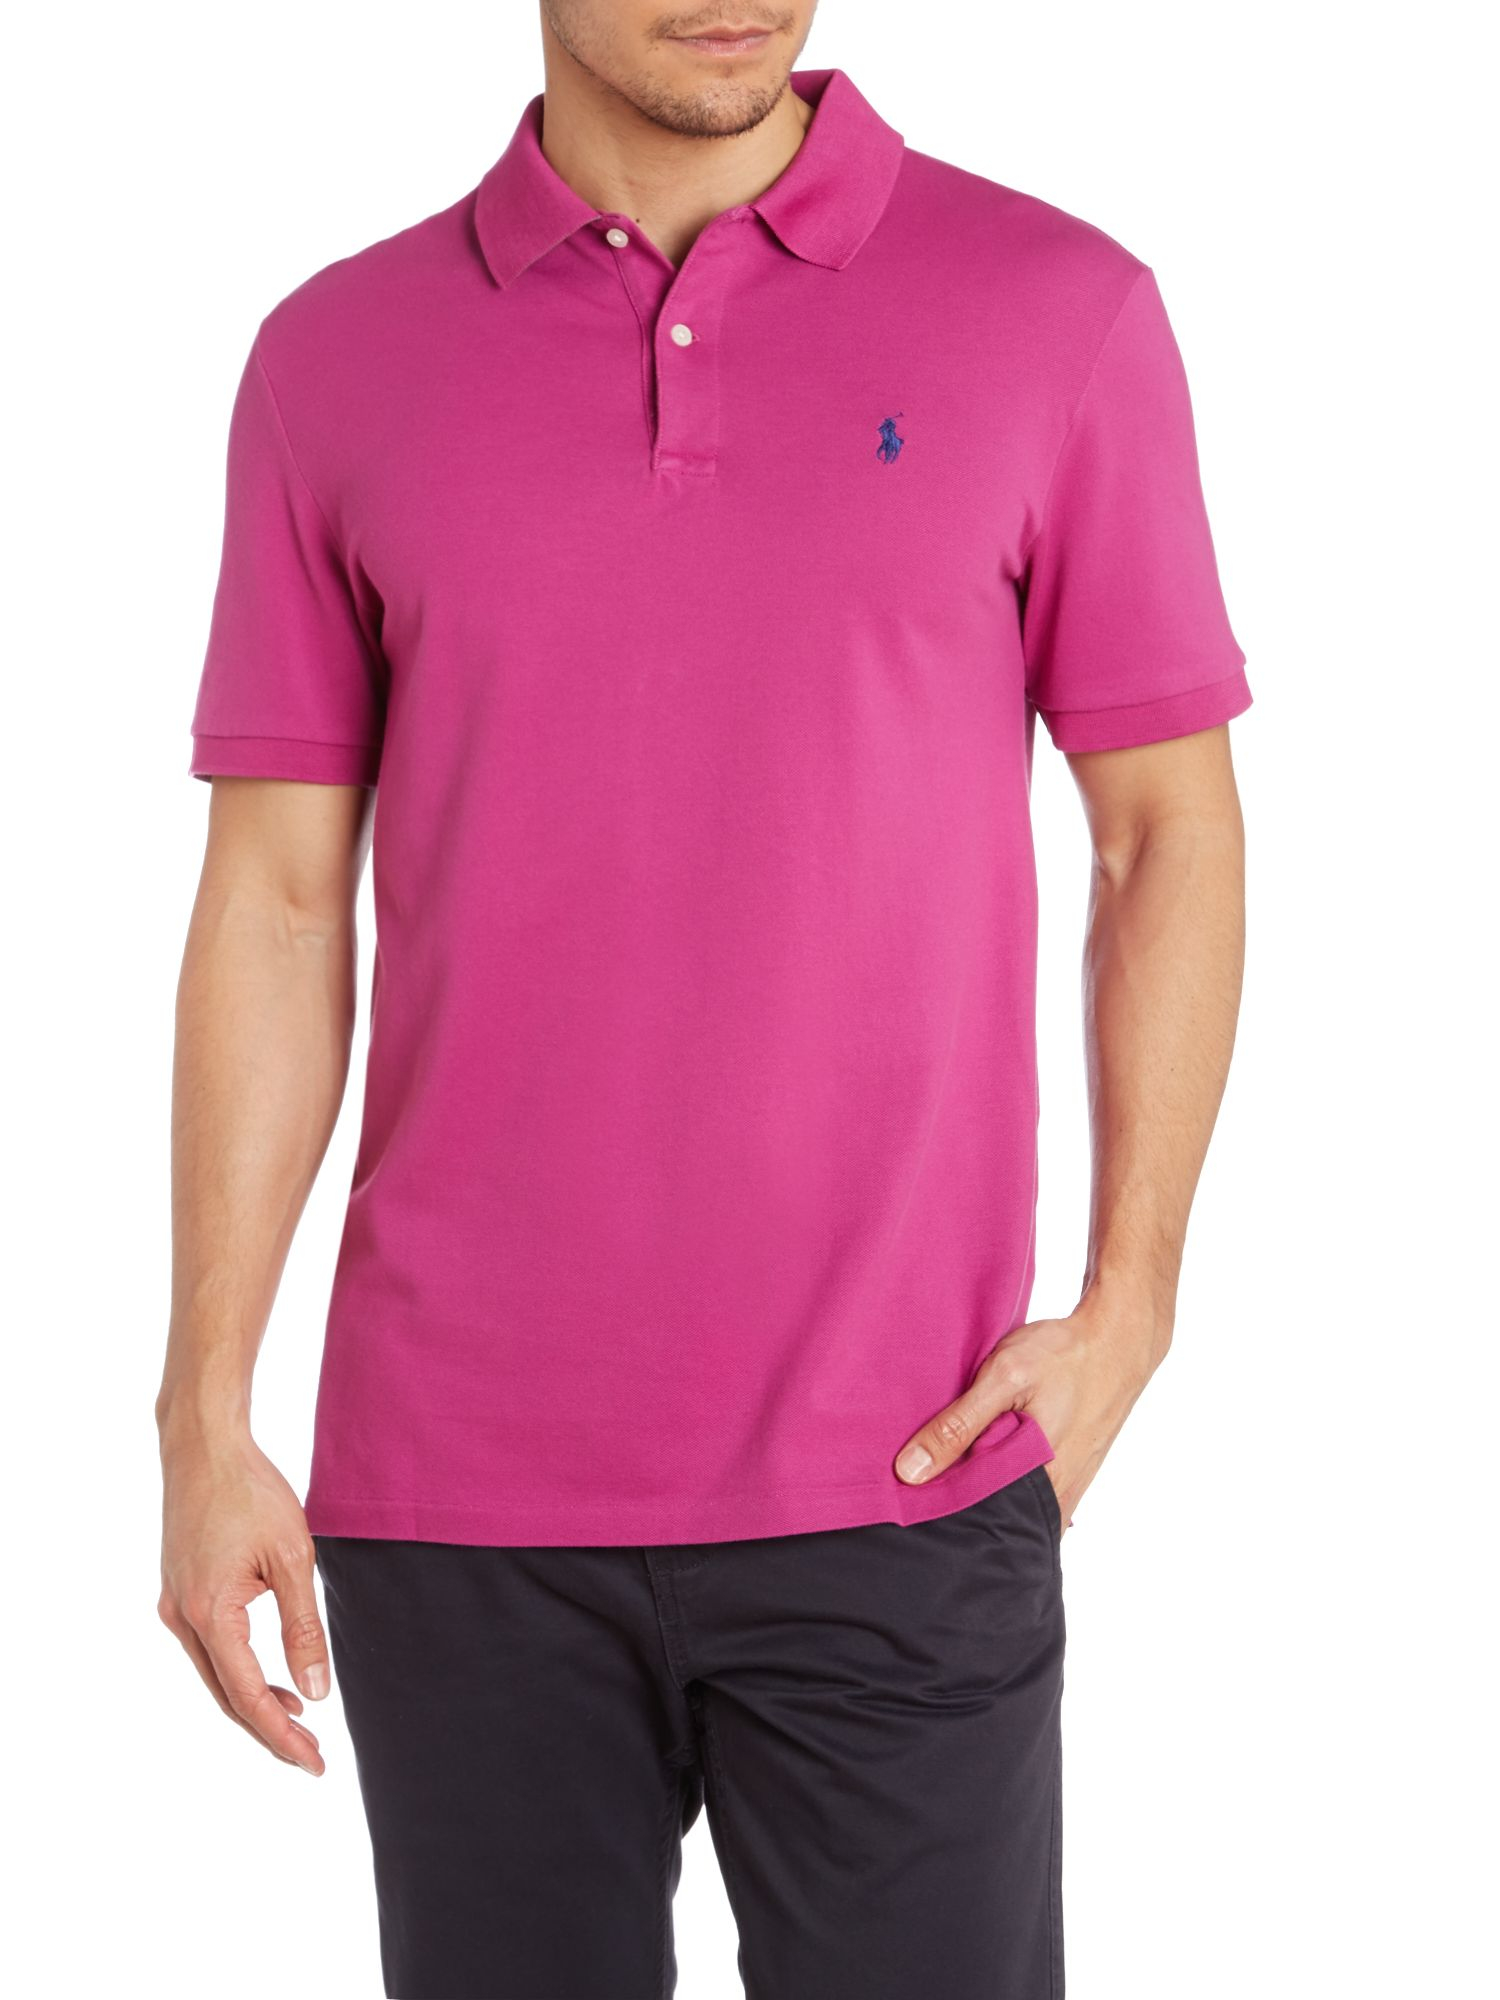 Ralph lauren golf Contrast Collar Polo Shirt in Pink for ...